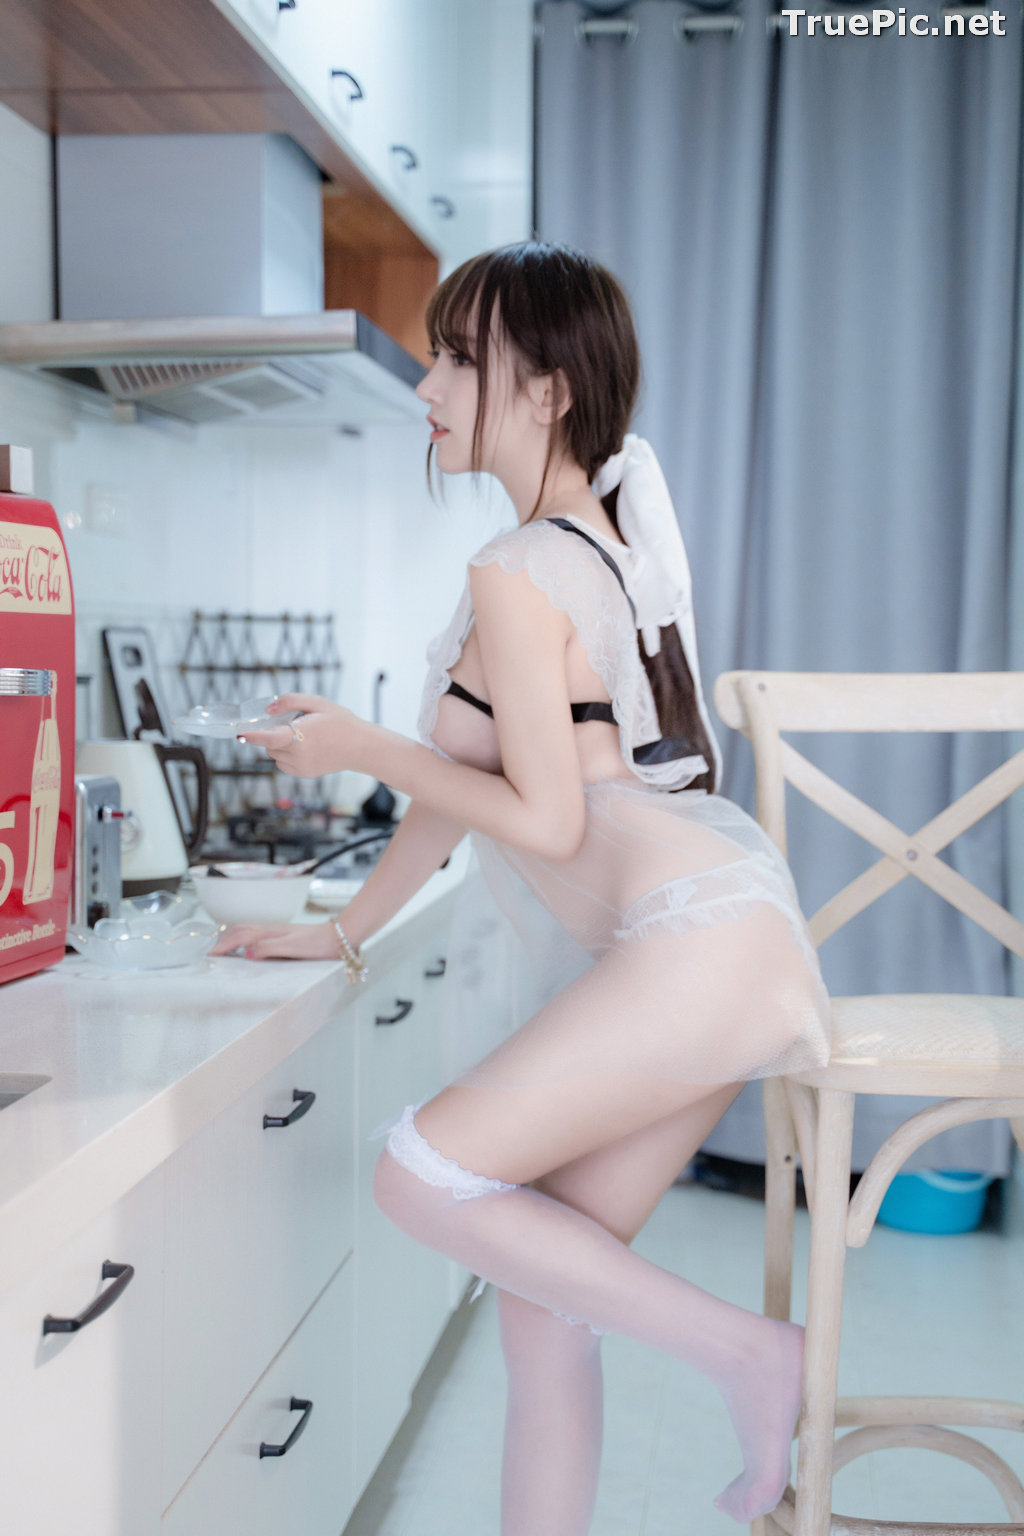 Image Chinese Model – 过期米线线喵 (米線線sama) – Sexy Housewife - TruePic.net - Picture-27